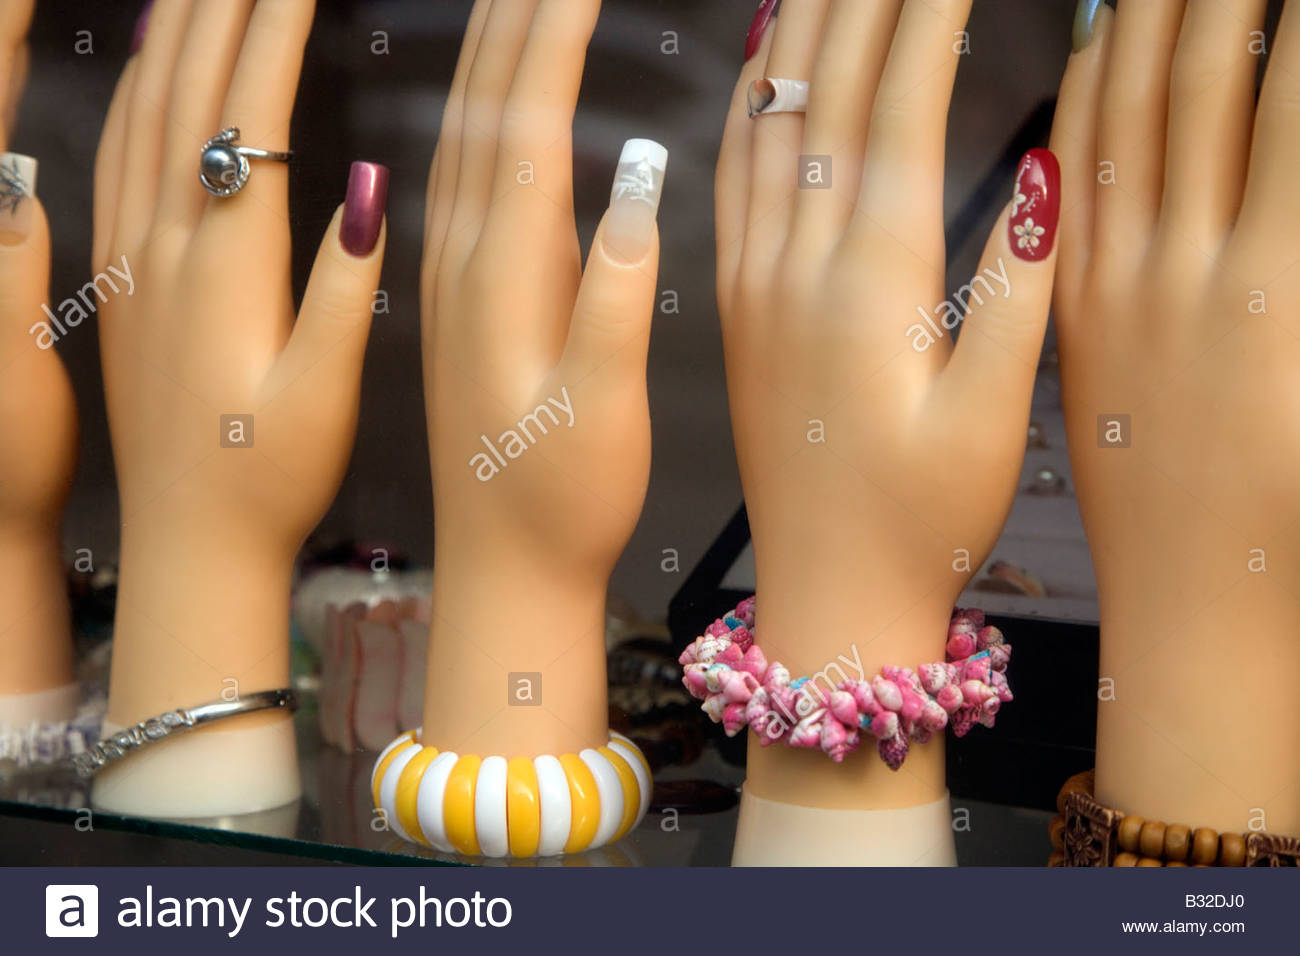 window display for nail extension and jewelry Stock Photo: 19108936 ...